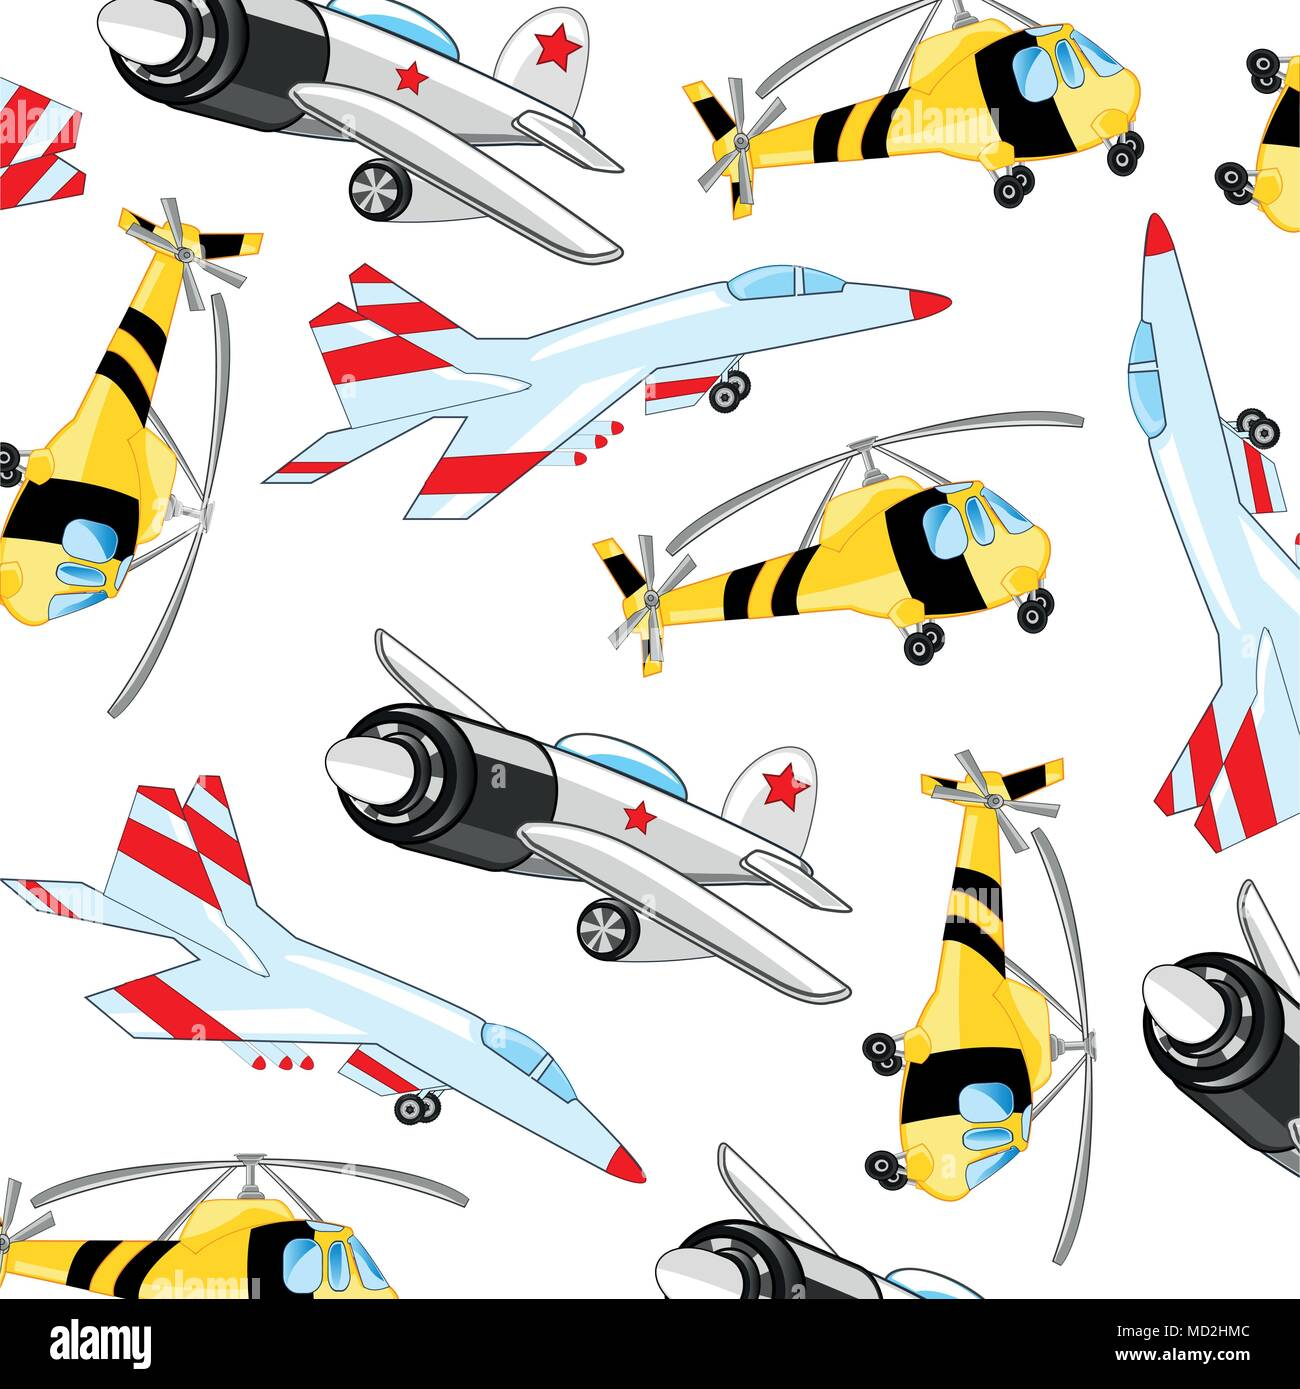 Fighter with plane and helicopter pattern - Stock Vector